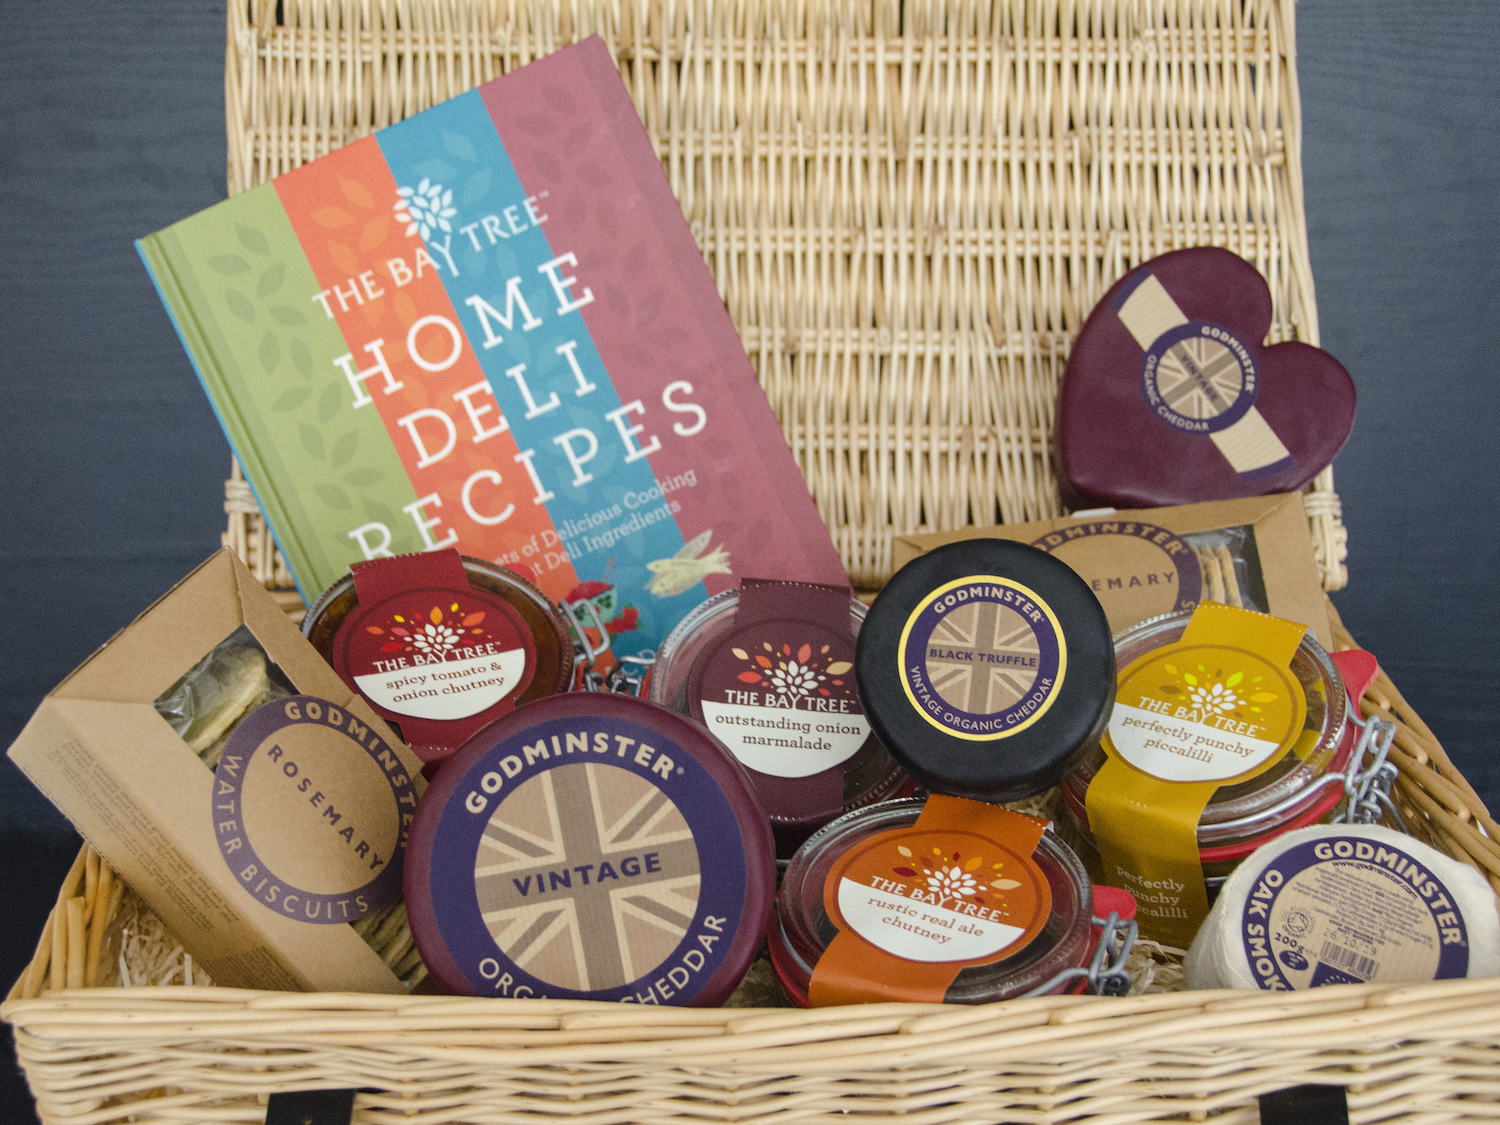 Visit Somerset Competition: Win a hamper of goodies from Godminster and The Bay Tree worth approx. £100!